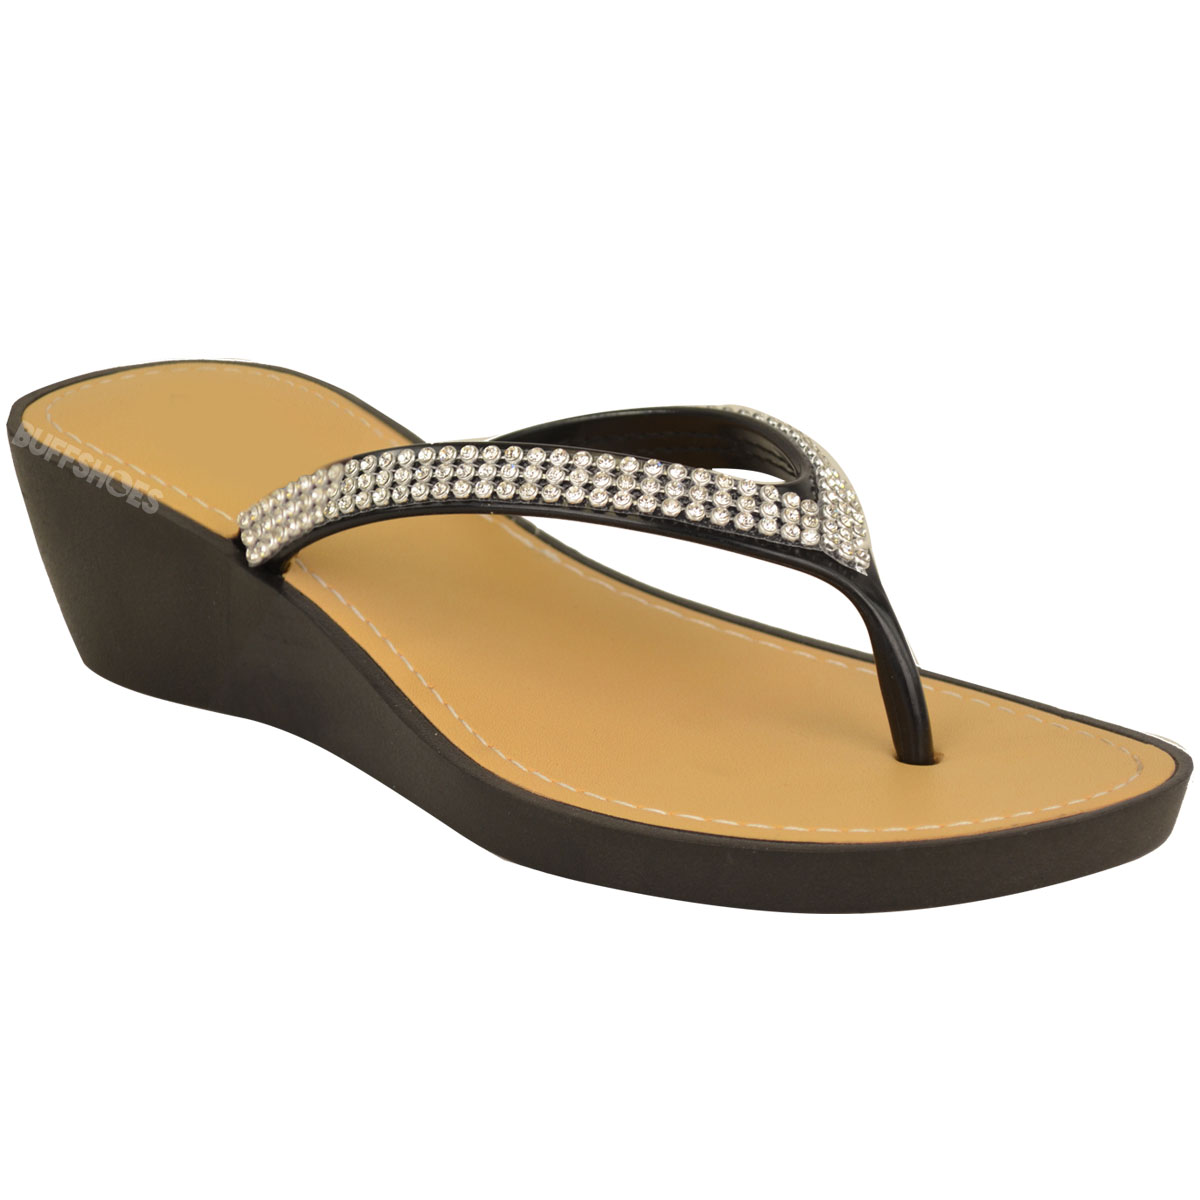 NEW-JELLY-SANDALS-WOMENS-LADIES-DIAMANTE-SUMMER-HOLIDAY-COMFORTS-FLIP-FLOPS-SIZE thumbnail 3